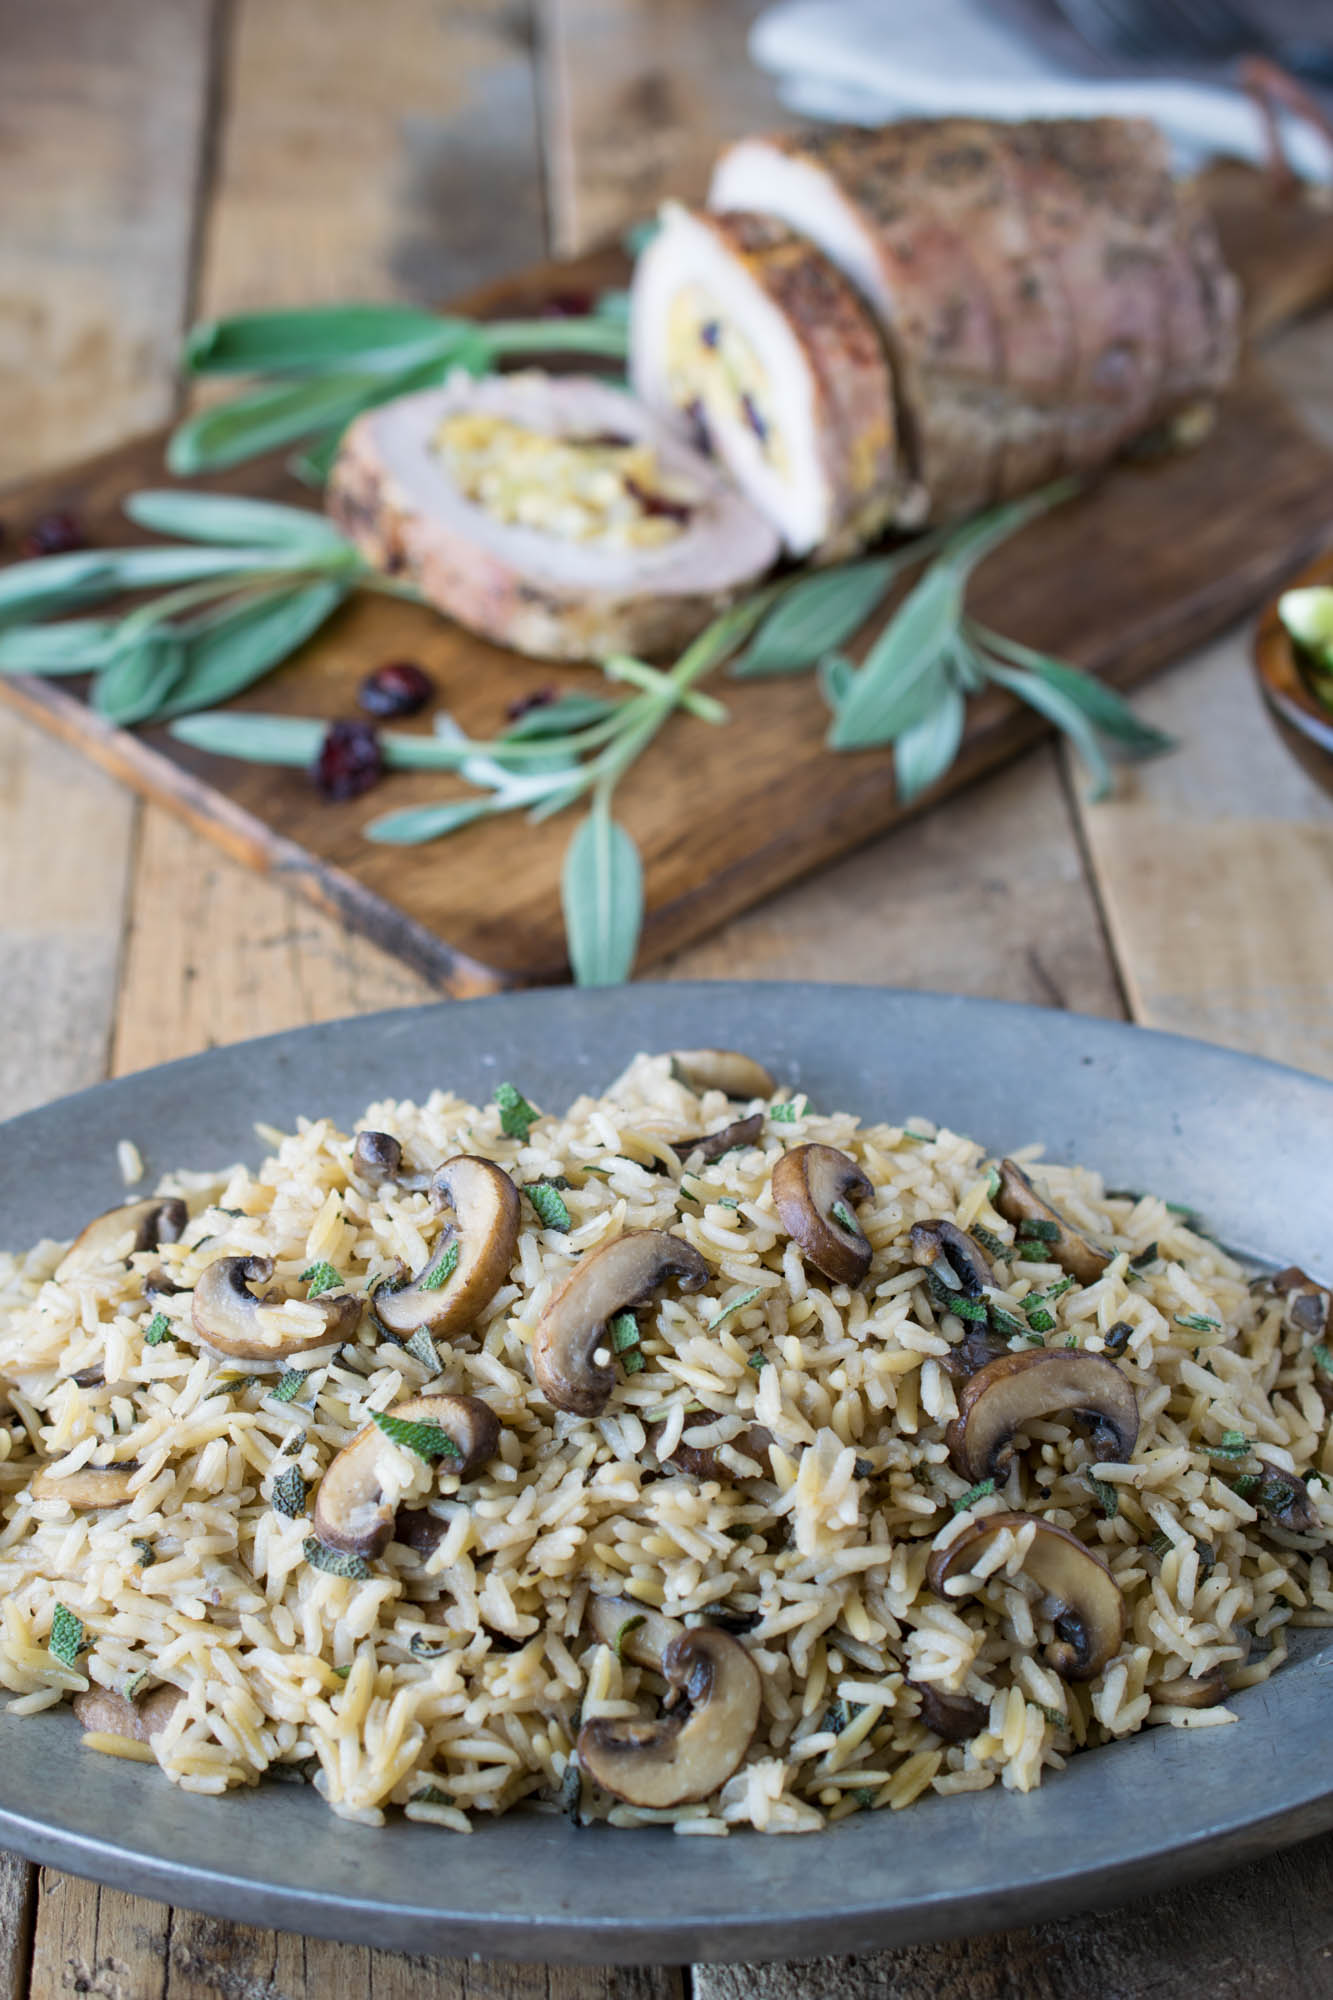 Mushroom and sage rice pilaf is an earthy and perfectly seasonal side dish full of fall flavors that is quick and easy to make that will become your new favorite rice dish.